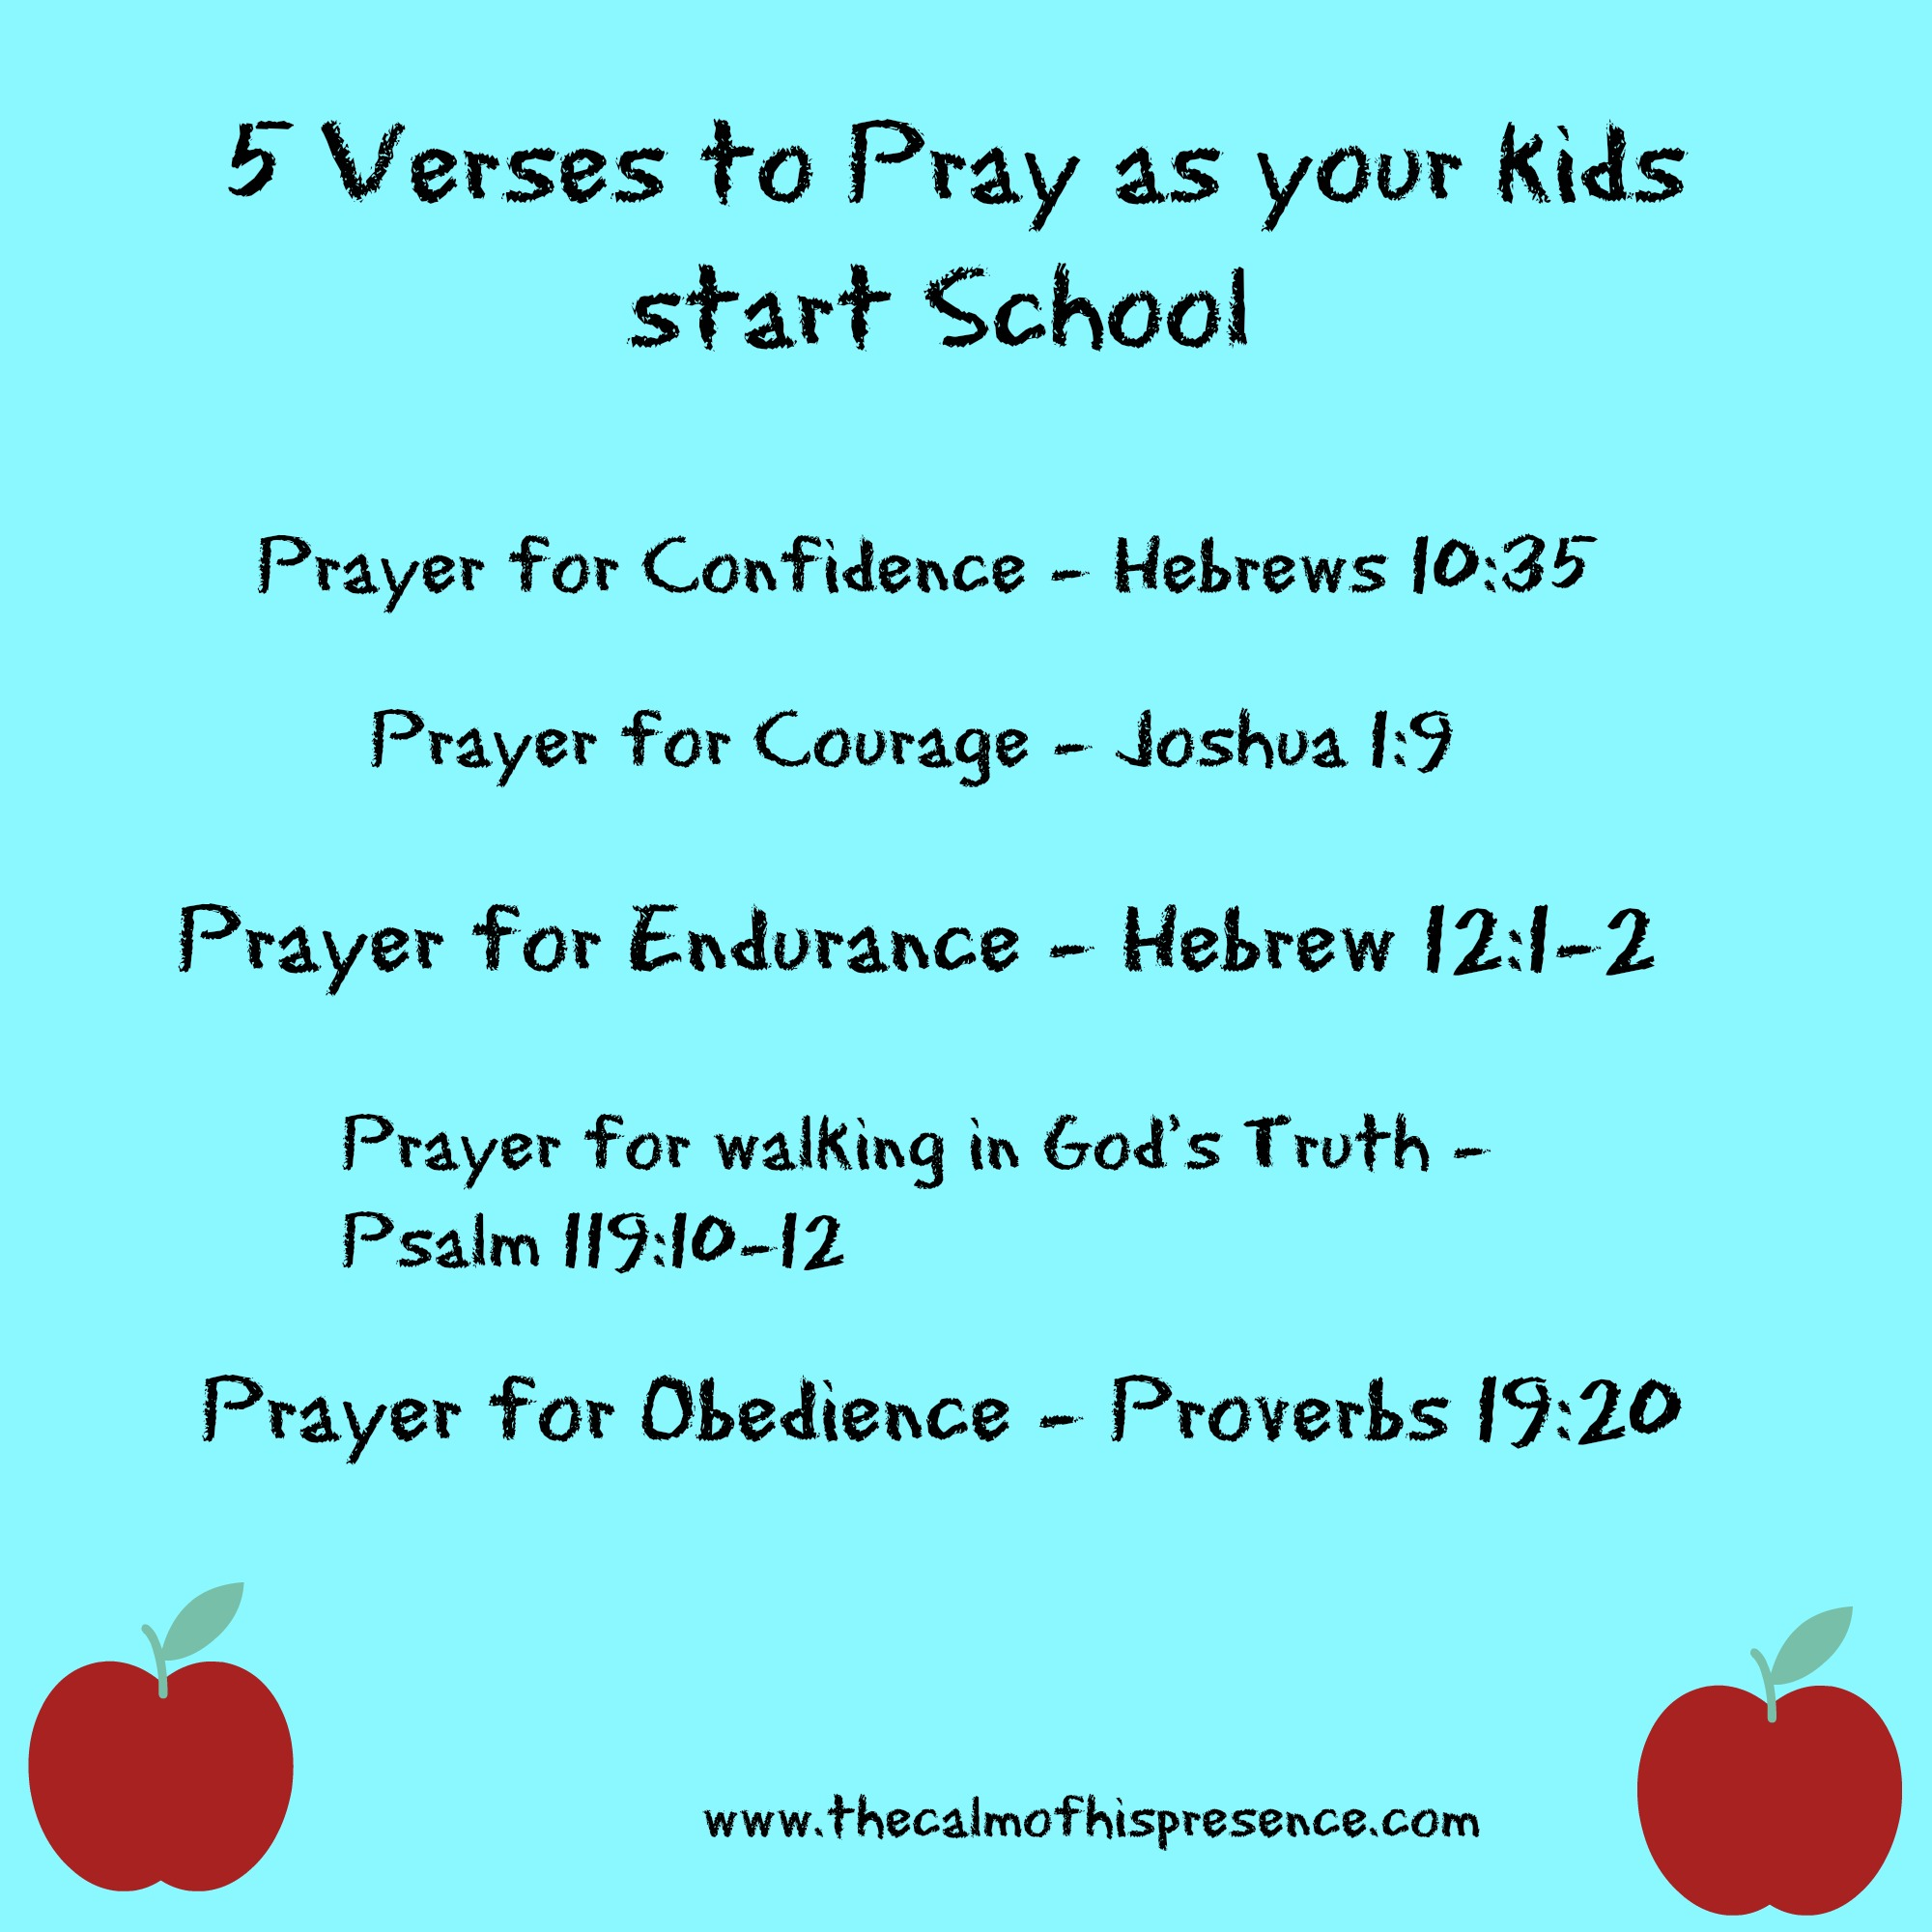 5 Verses To Pray As Your Kids Start School » The Calm Of